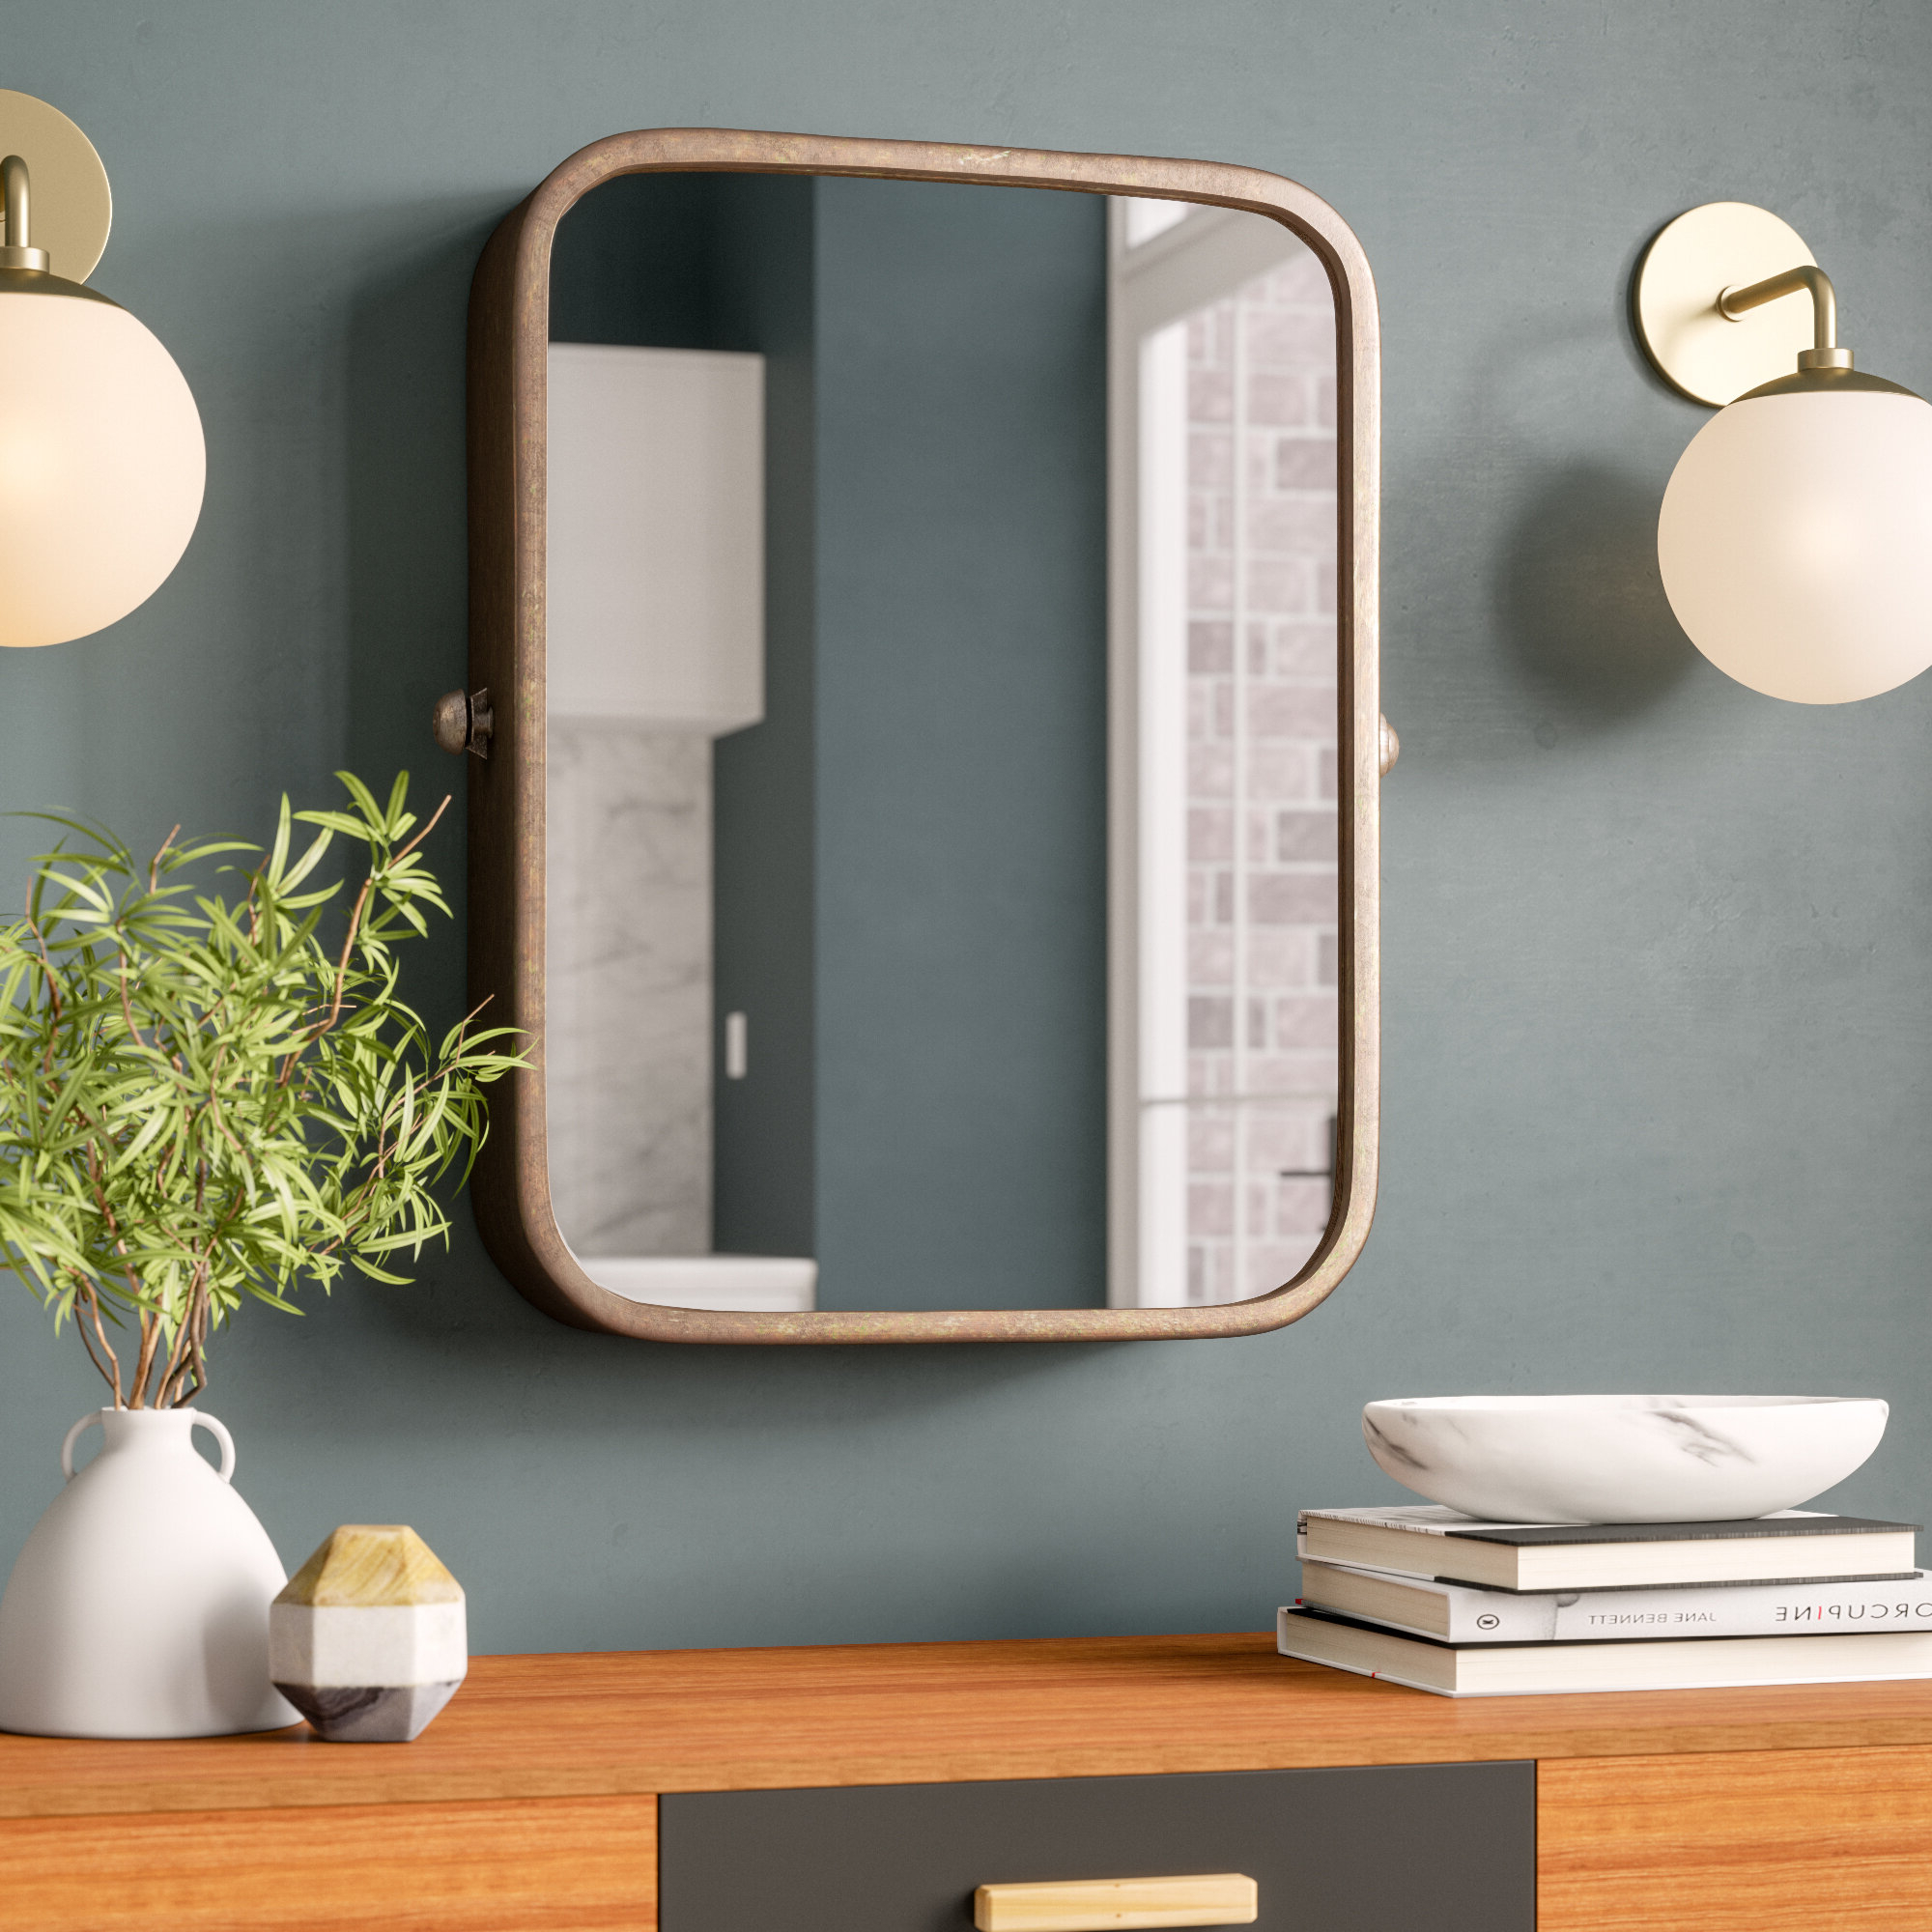 Lavendon And Hanging Wall Mirror Throughout Latest Hang Wall Mirrors (Gallery 9 of 20)